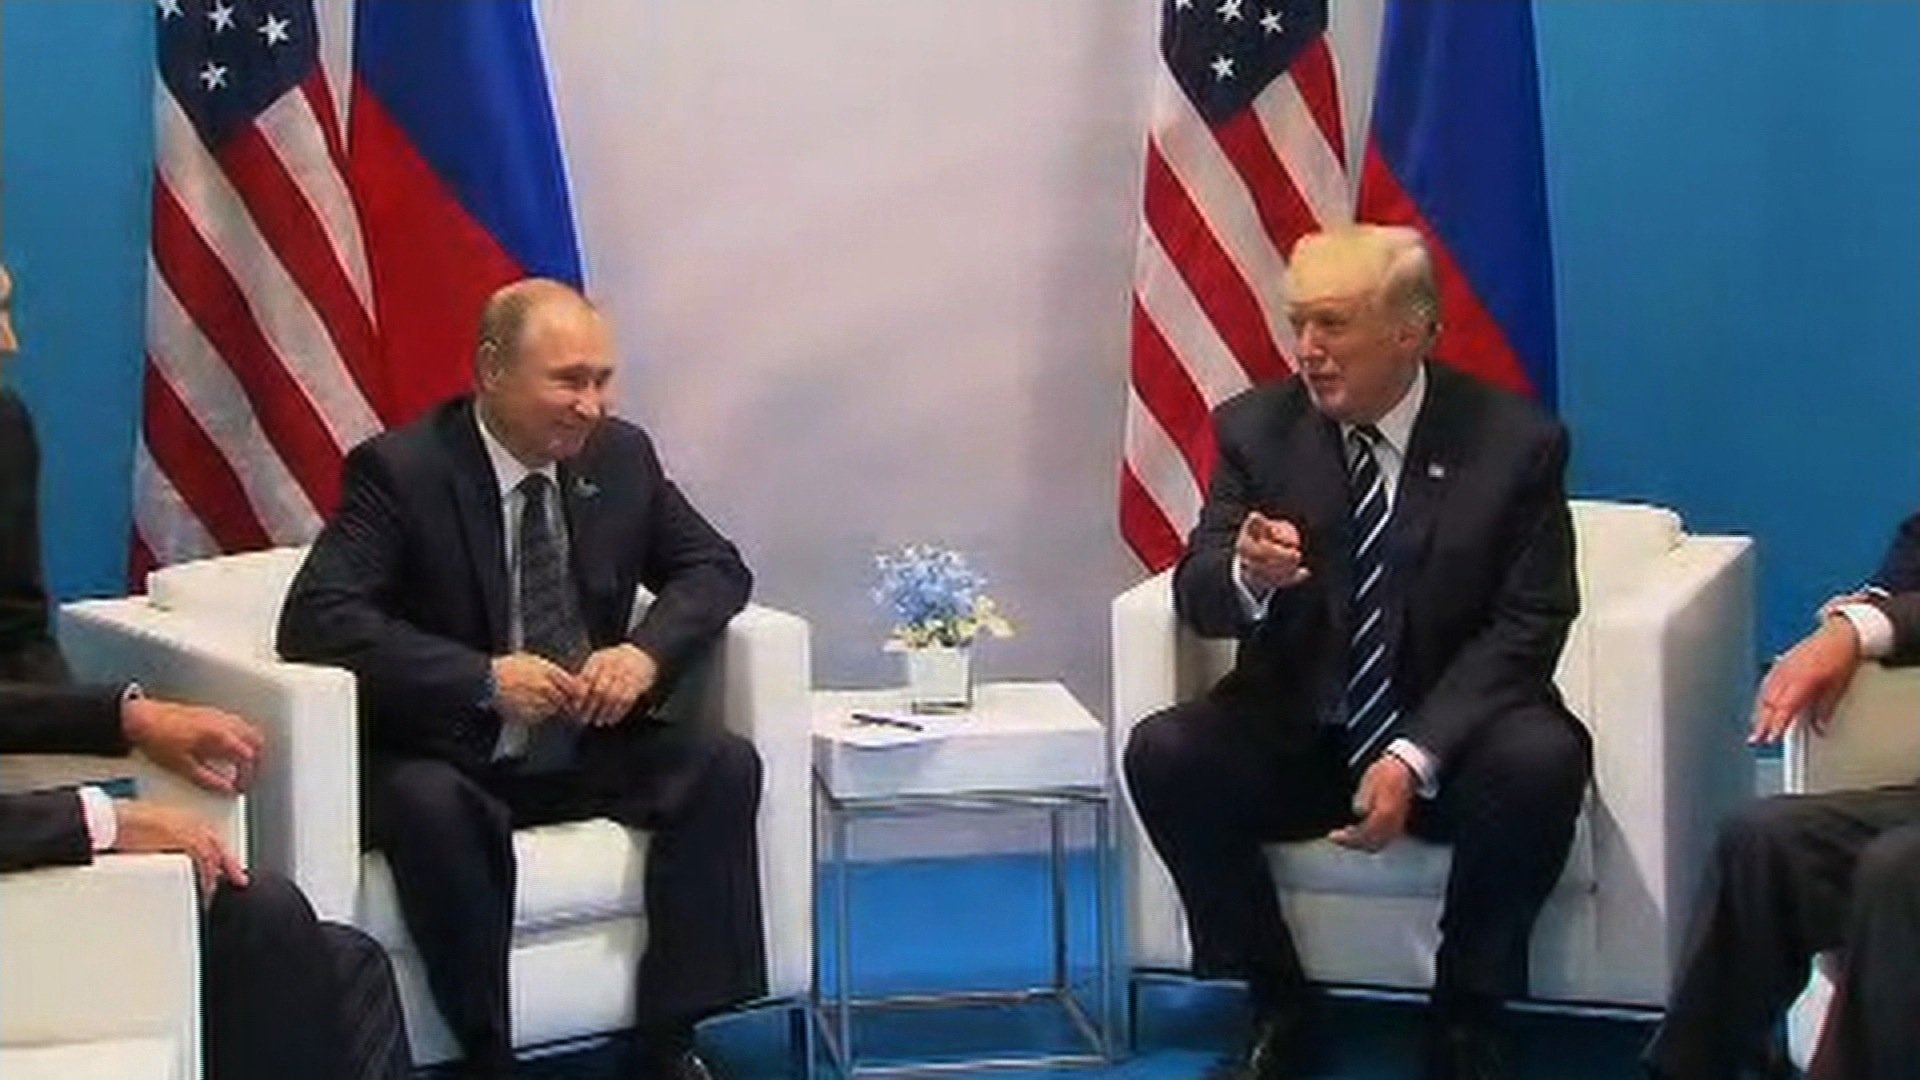 President Donald Trump and Russian President Vladimir Putin began their first official meeting after 4 p.m. local time. They spoke briefly to reporters before starting a closed discussion